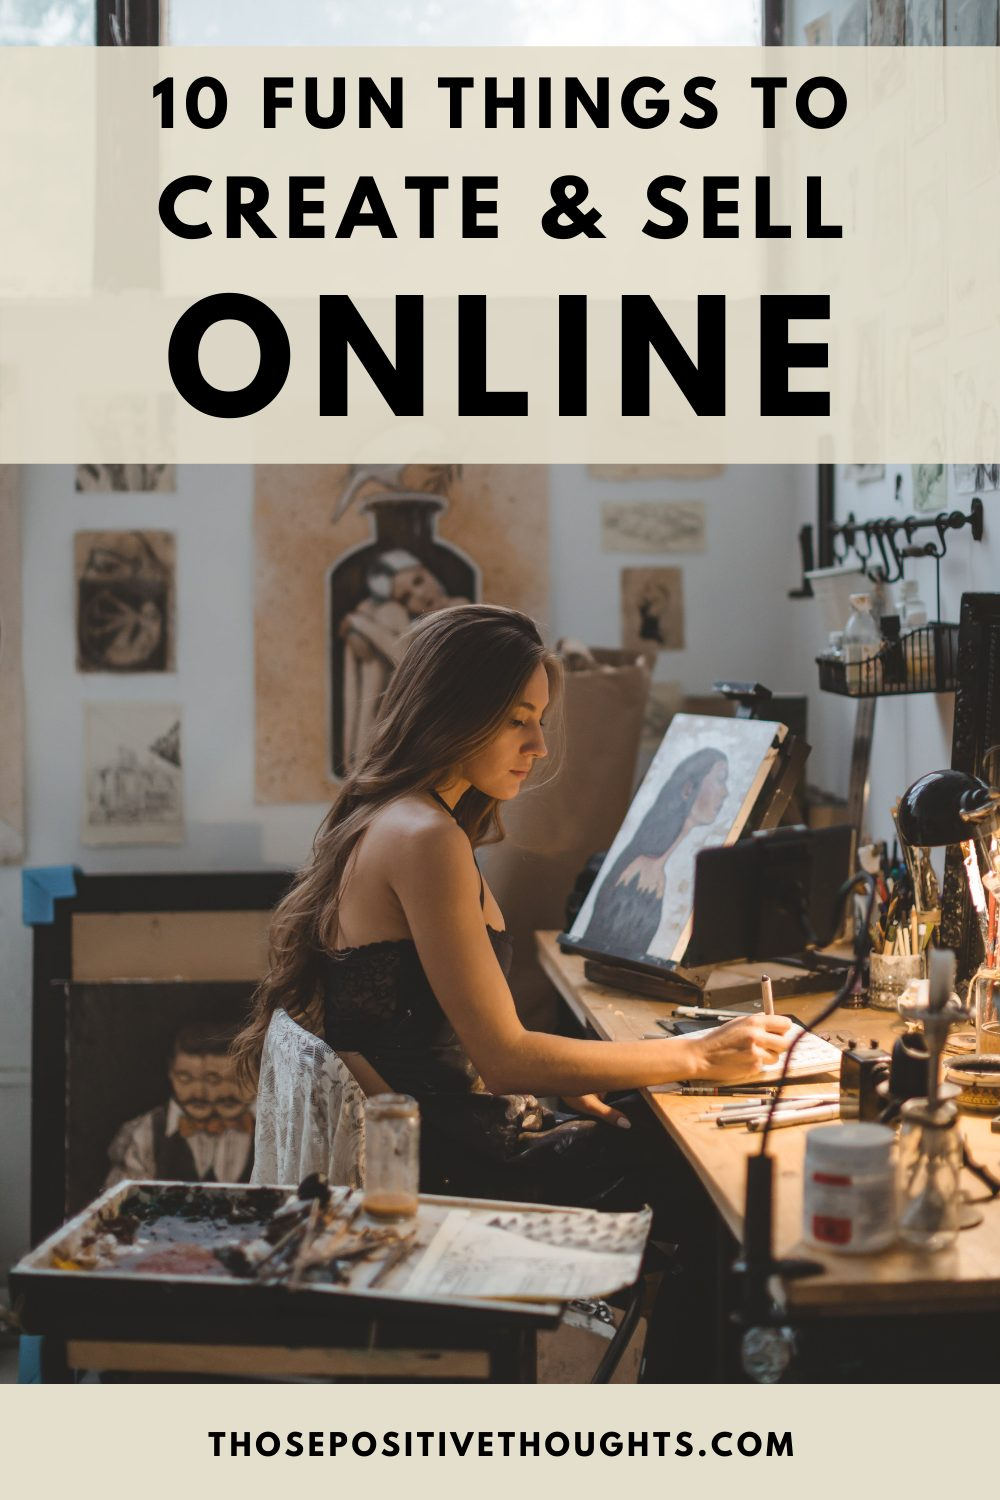 10 fun things to create and sell online